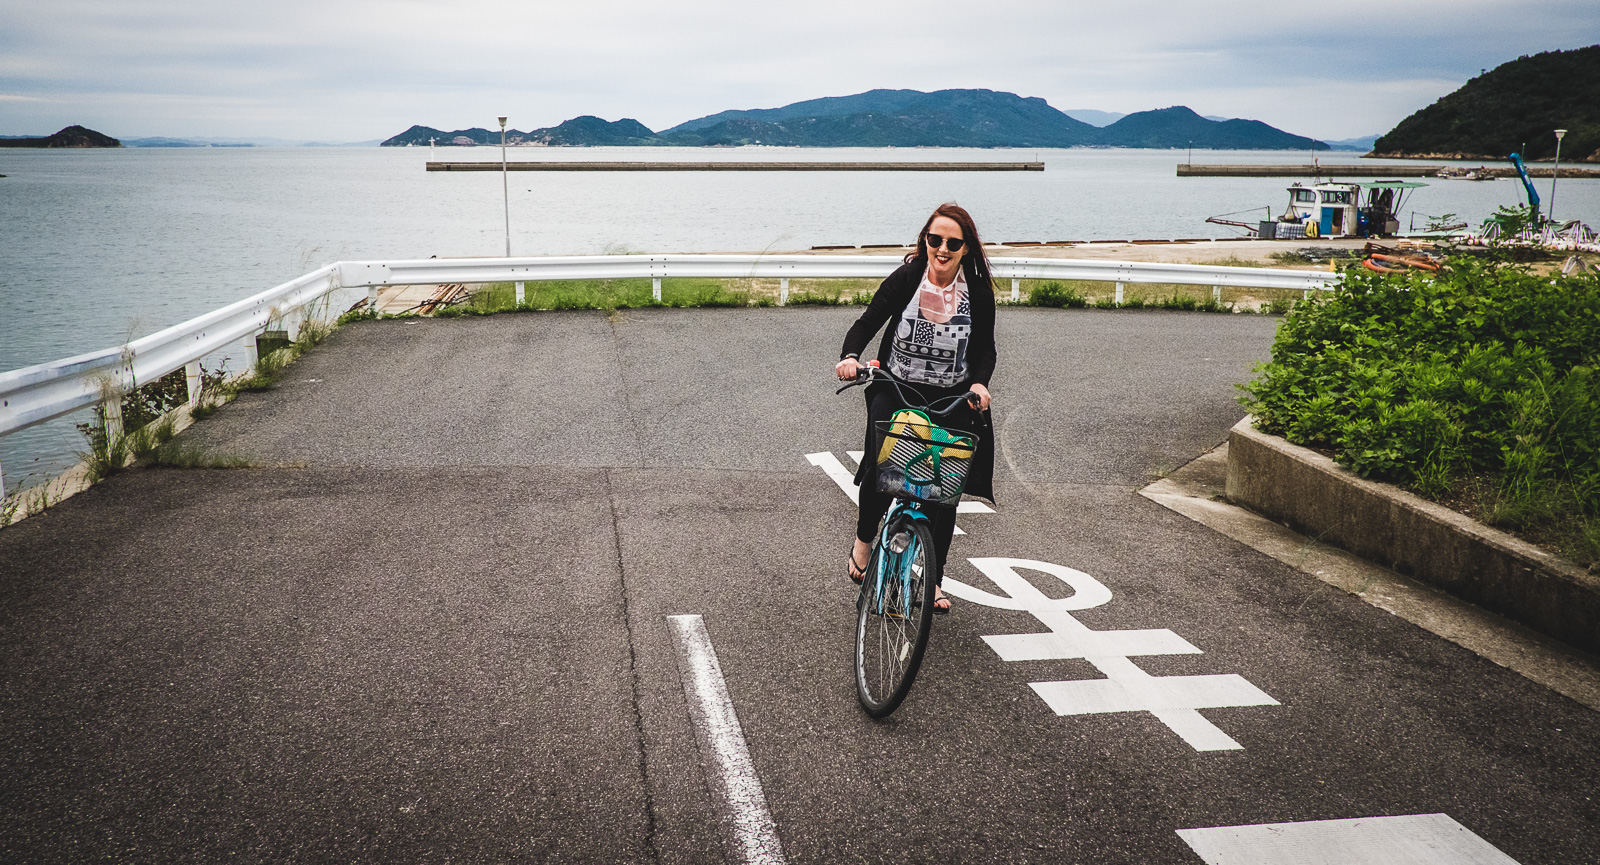 Riding a bike in Naoshima